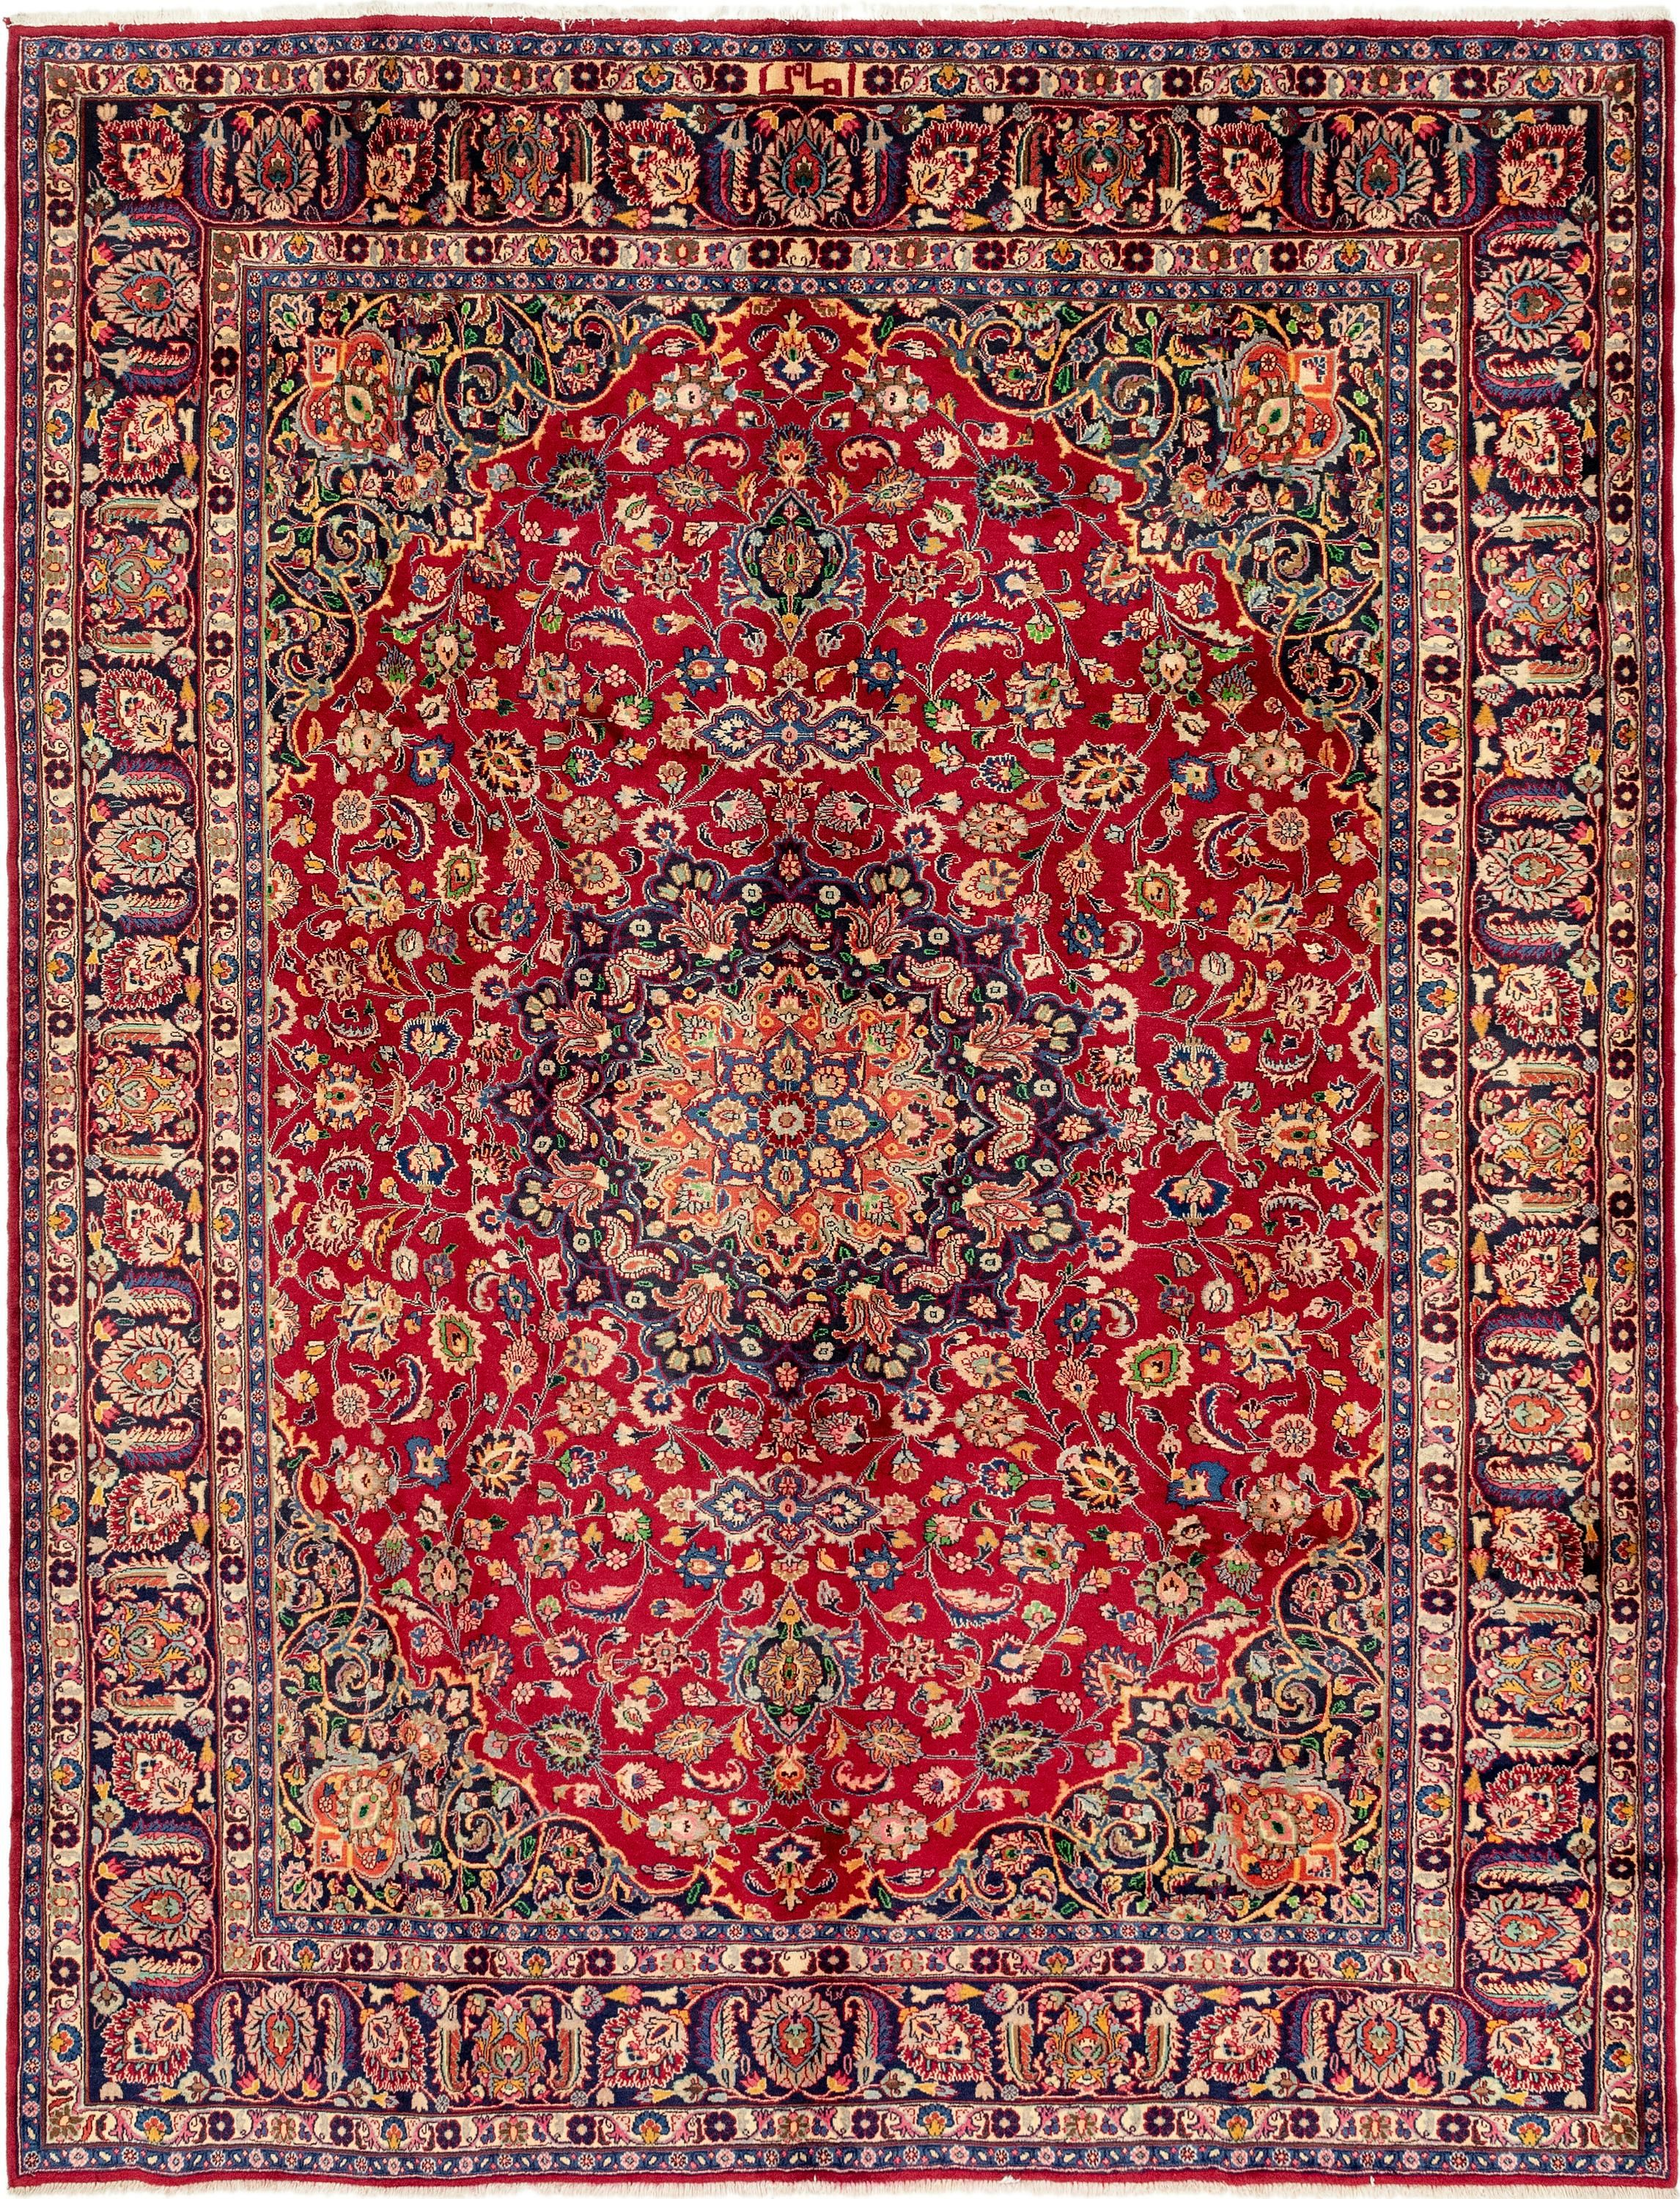 Red 9 10 X 12 5 Mashad Persian Rug Handknotted Com Persian